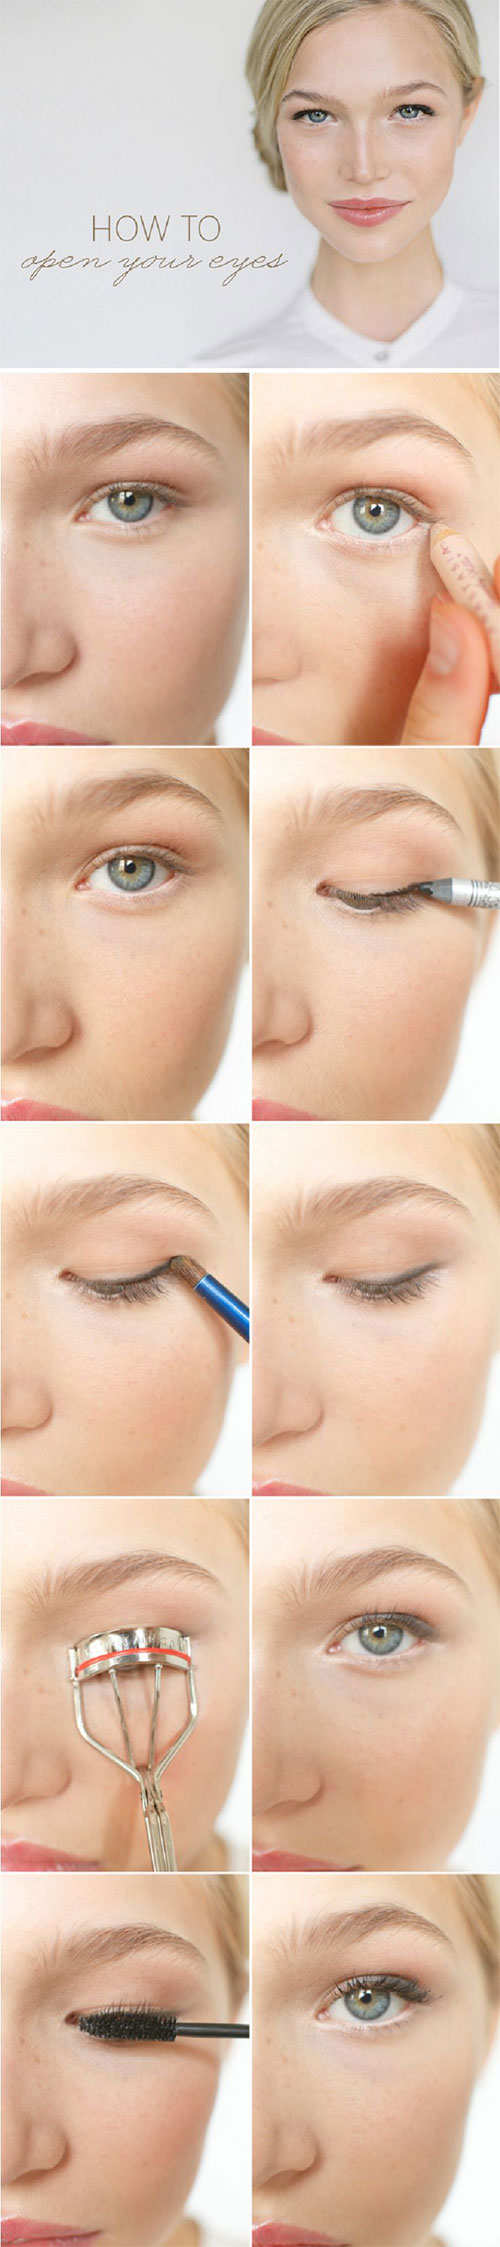 Easy-Step-By-Step-Winter-Make-Up-Tutorials-For-Beginners-Learners-2015-3